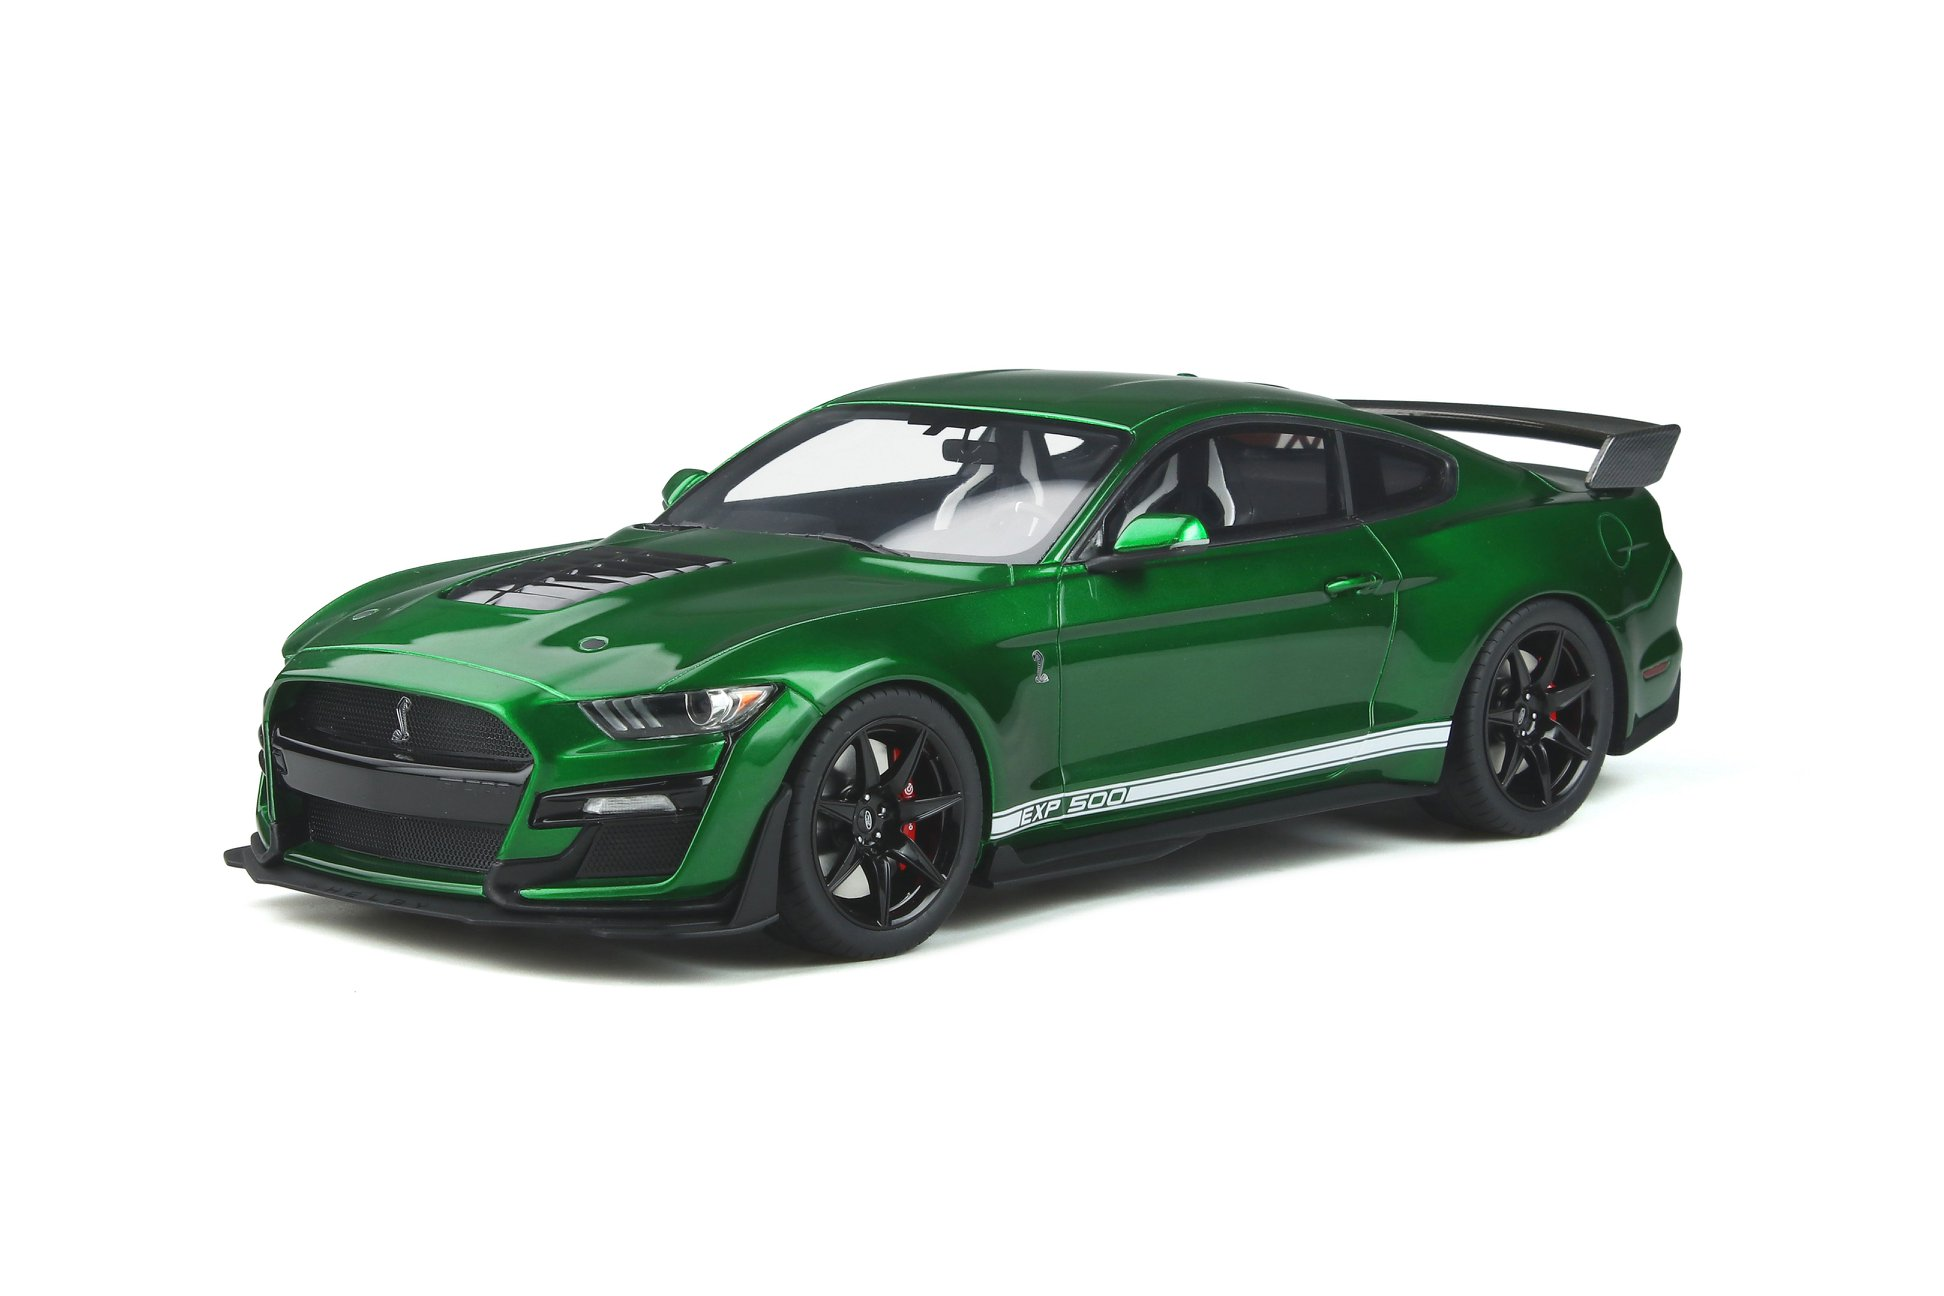 Ford Shelby GT500 2020 candy apple green 1:18 GT Spirit